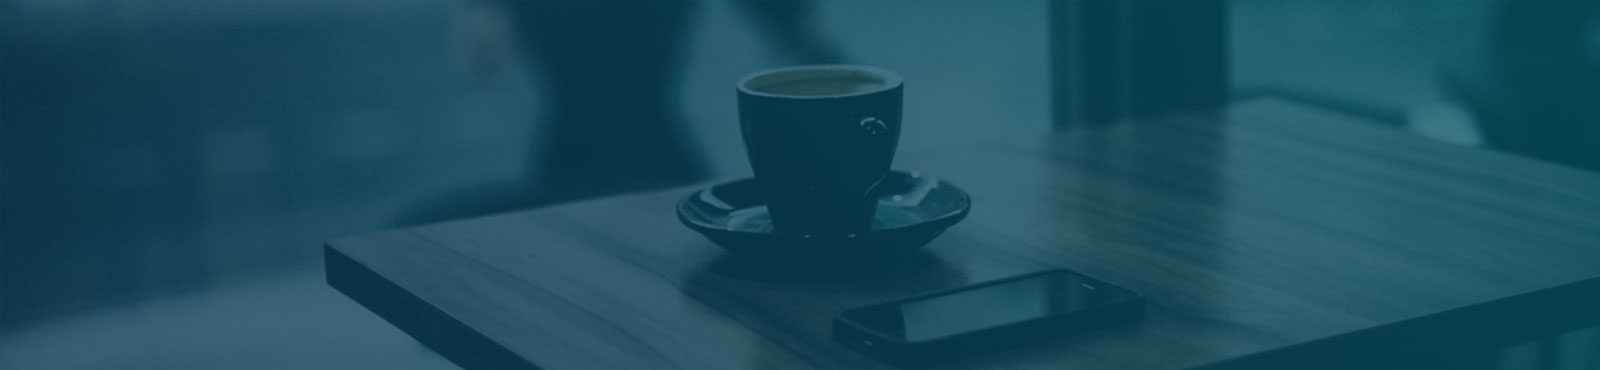 Blue-toned image of table with coffee and cellphone.